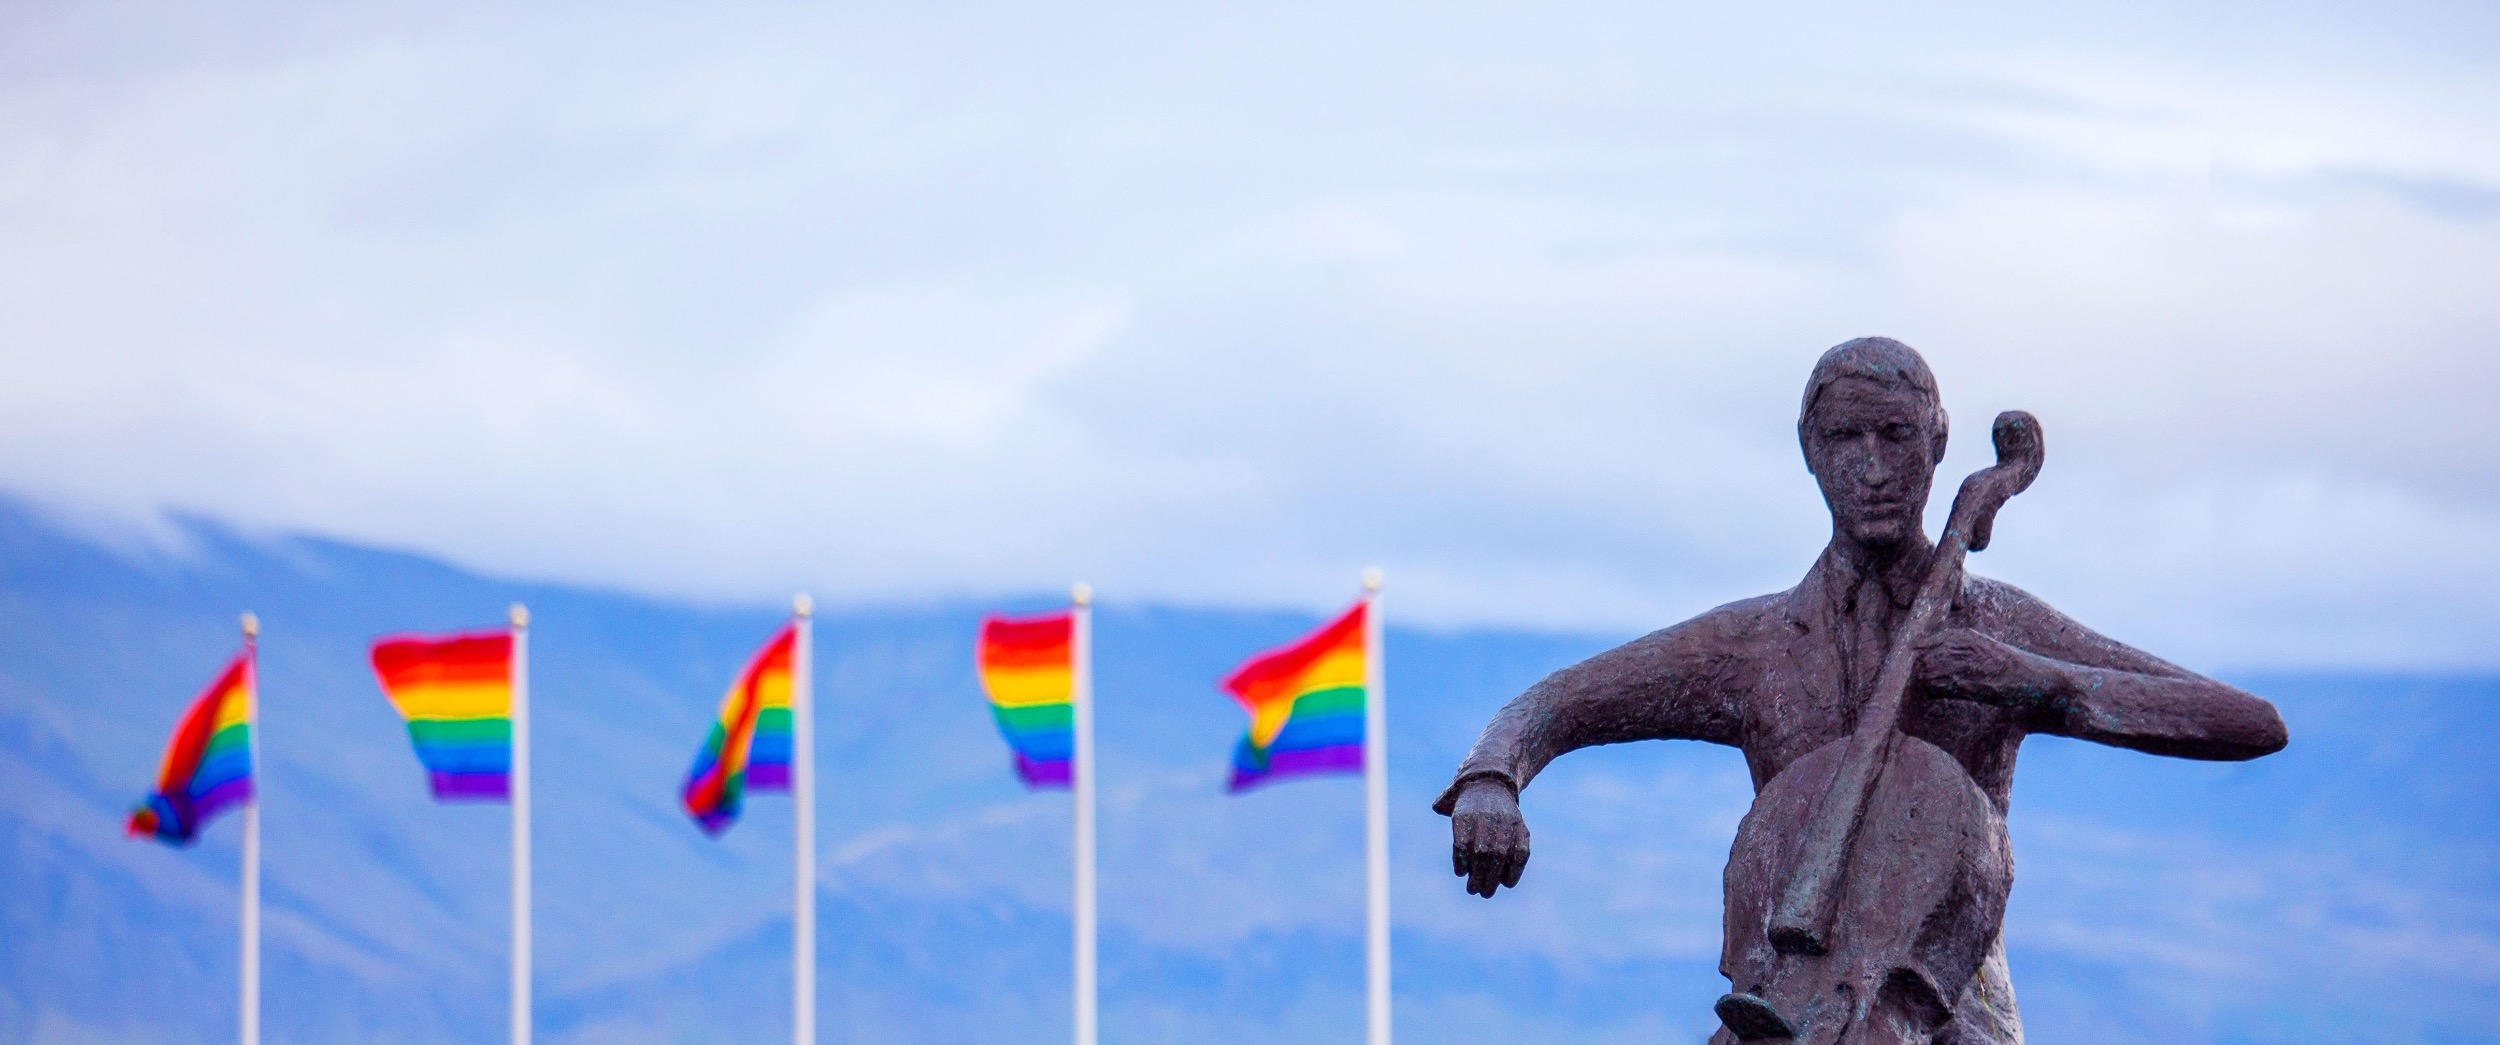 pride flags behind statue of a cellist